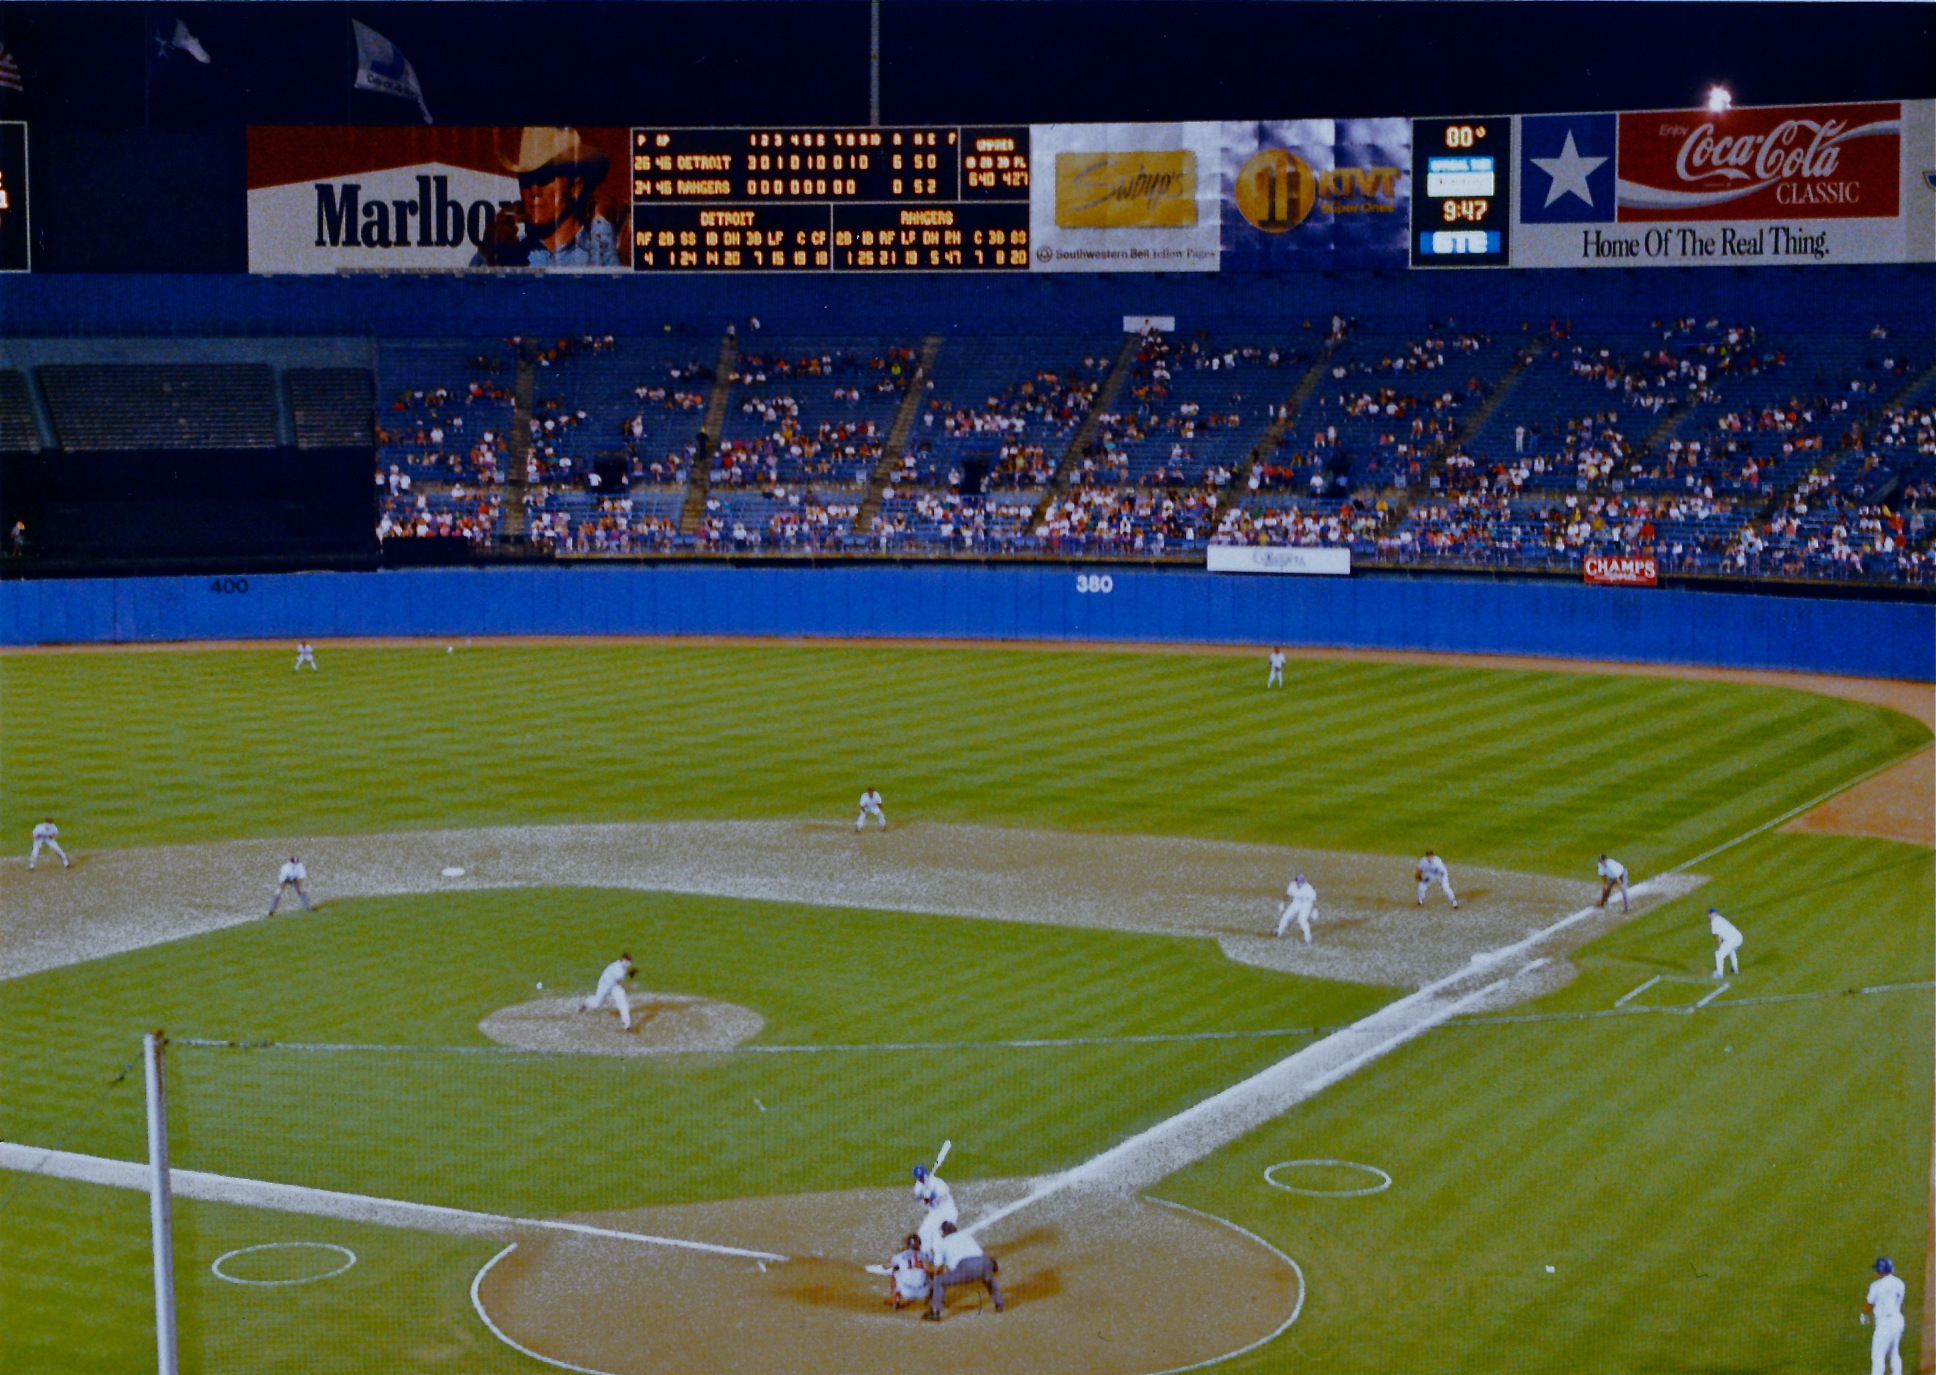 File:Arlington Stadium 1992 - 3.jpg - Wikimedia Commons